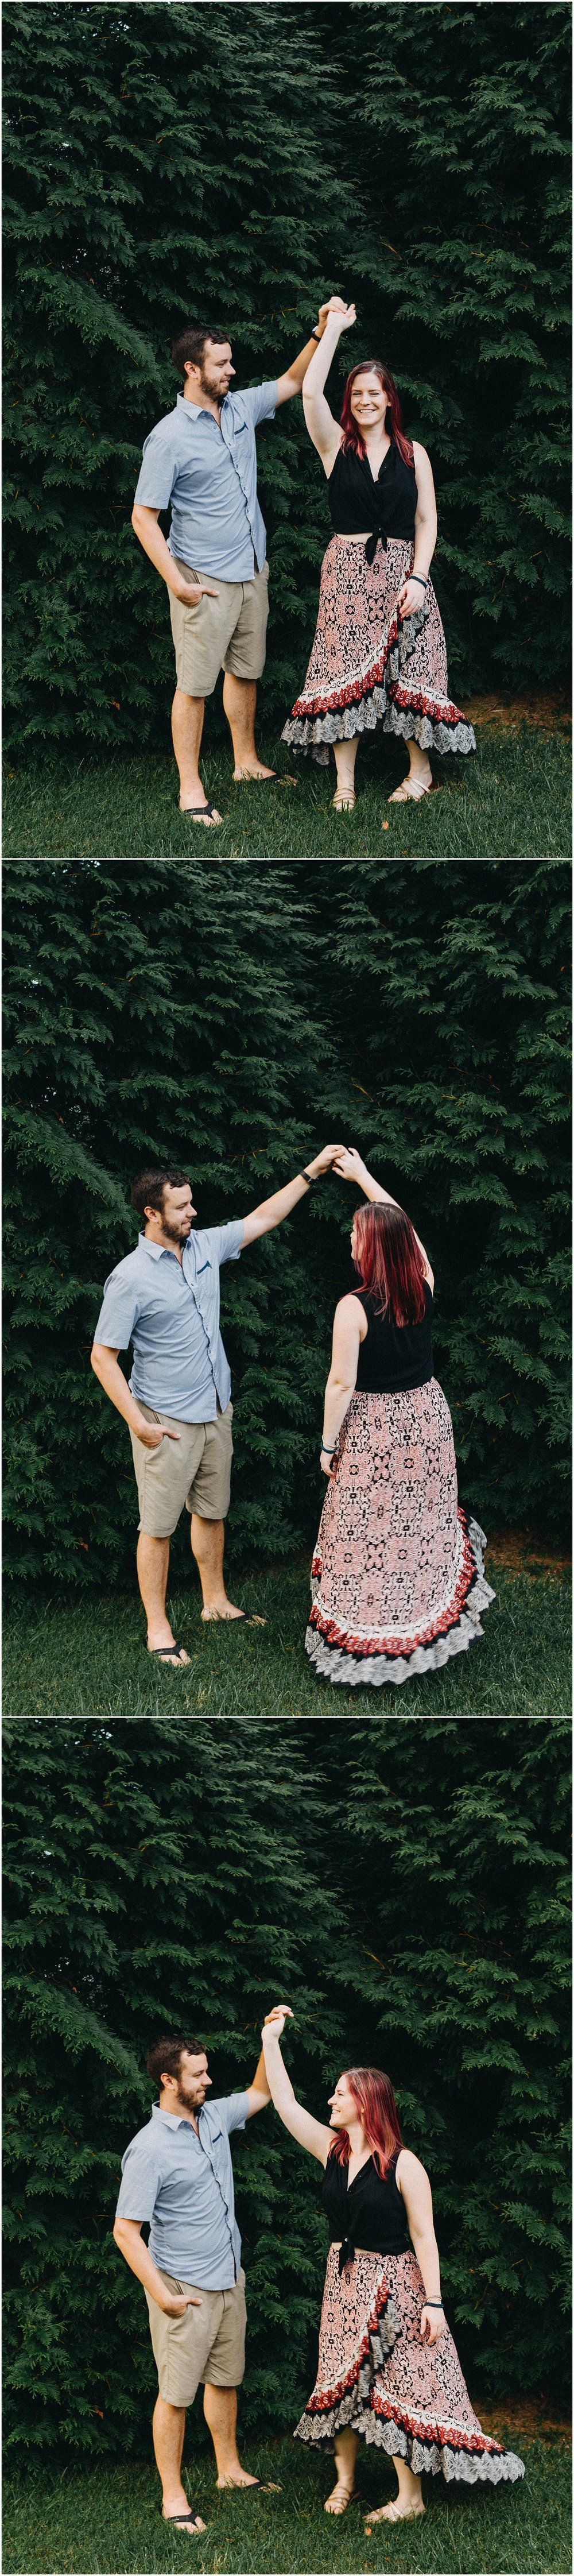 lifestyle-anniversary-engagement-photo session-rv-camping-road trip-vintage trailer-camping-outdoor photos_0264.jpg